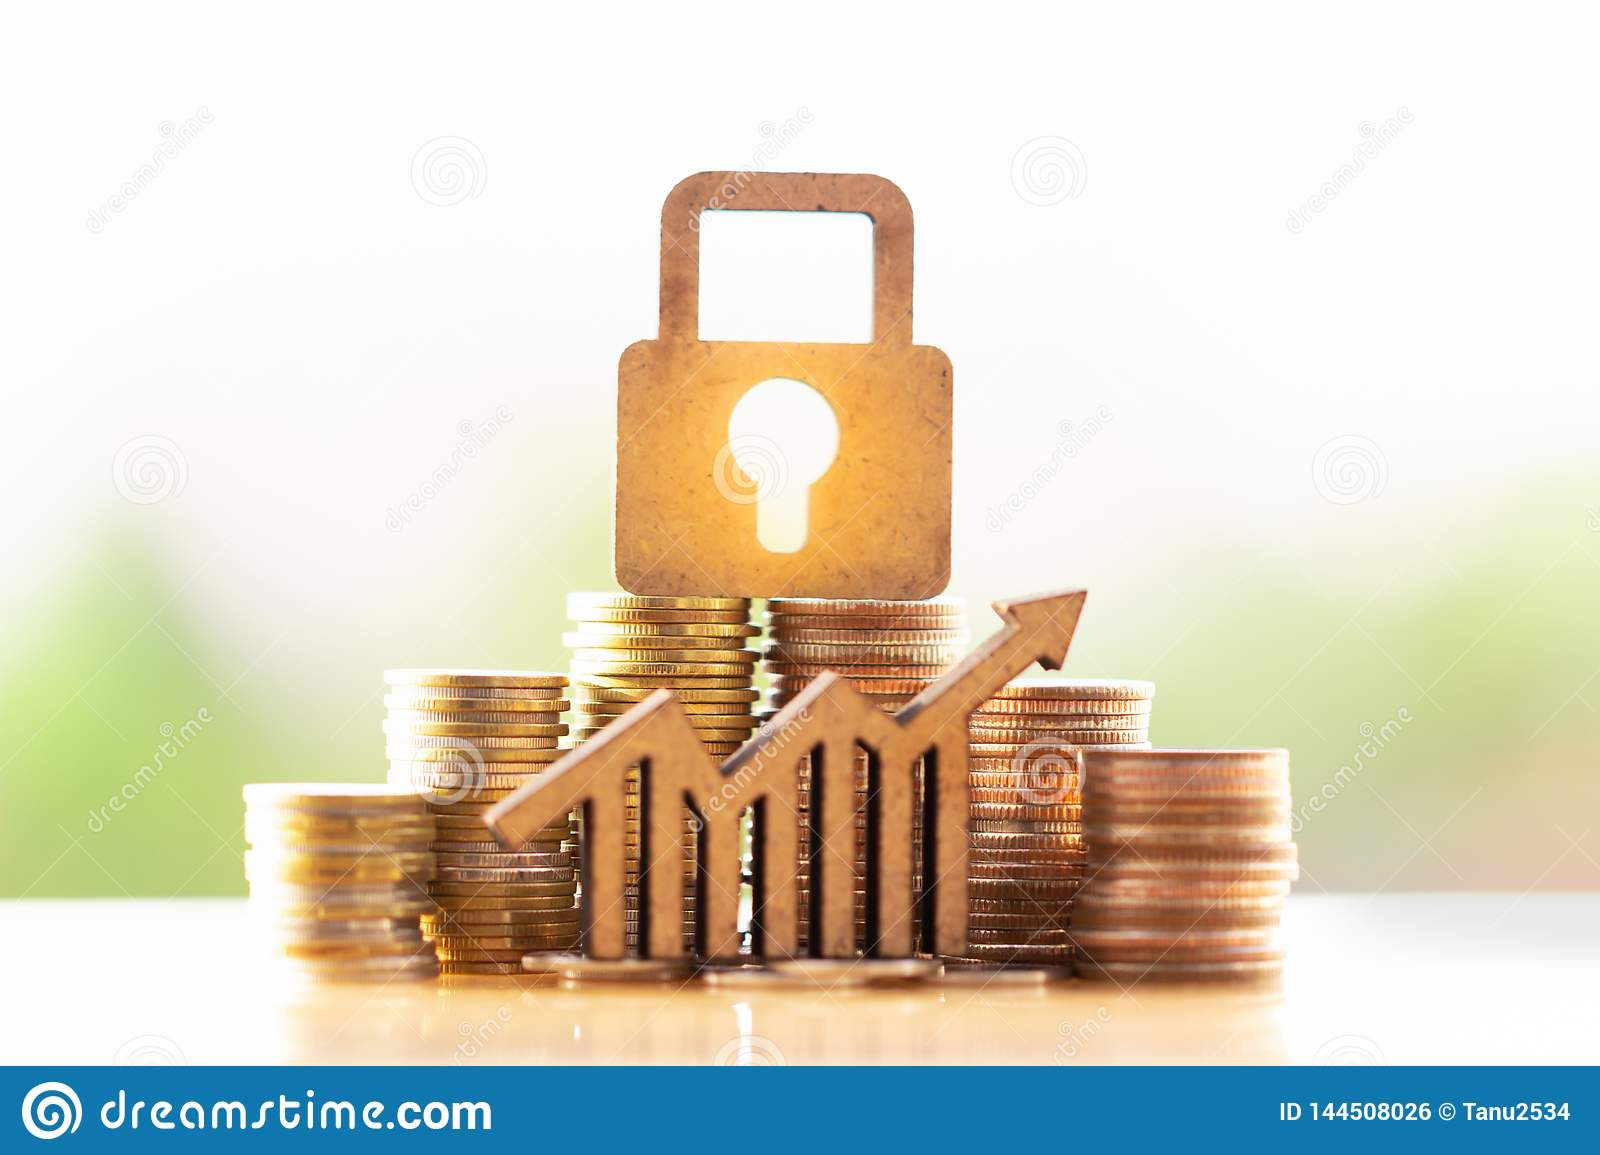 Wooden lock and stack of coins in concept of savings and money growing or energy save.